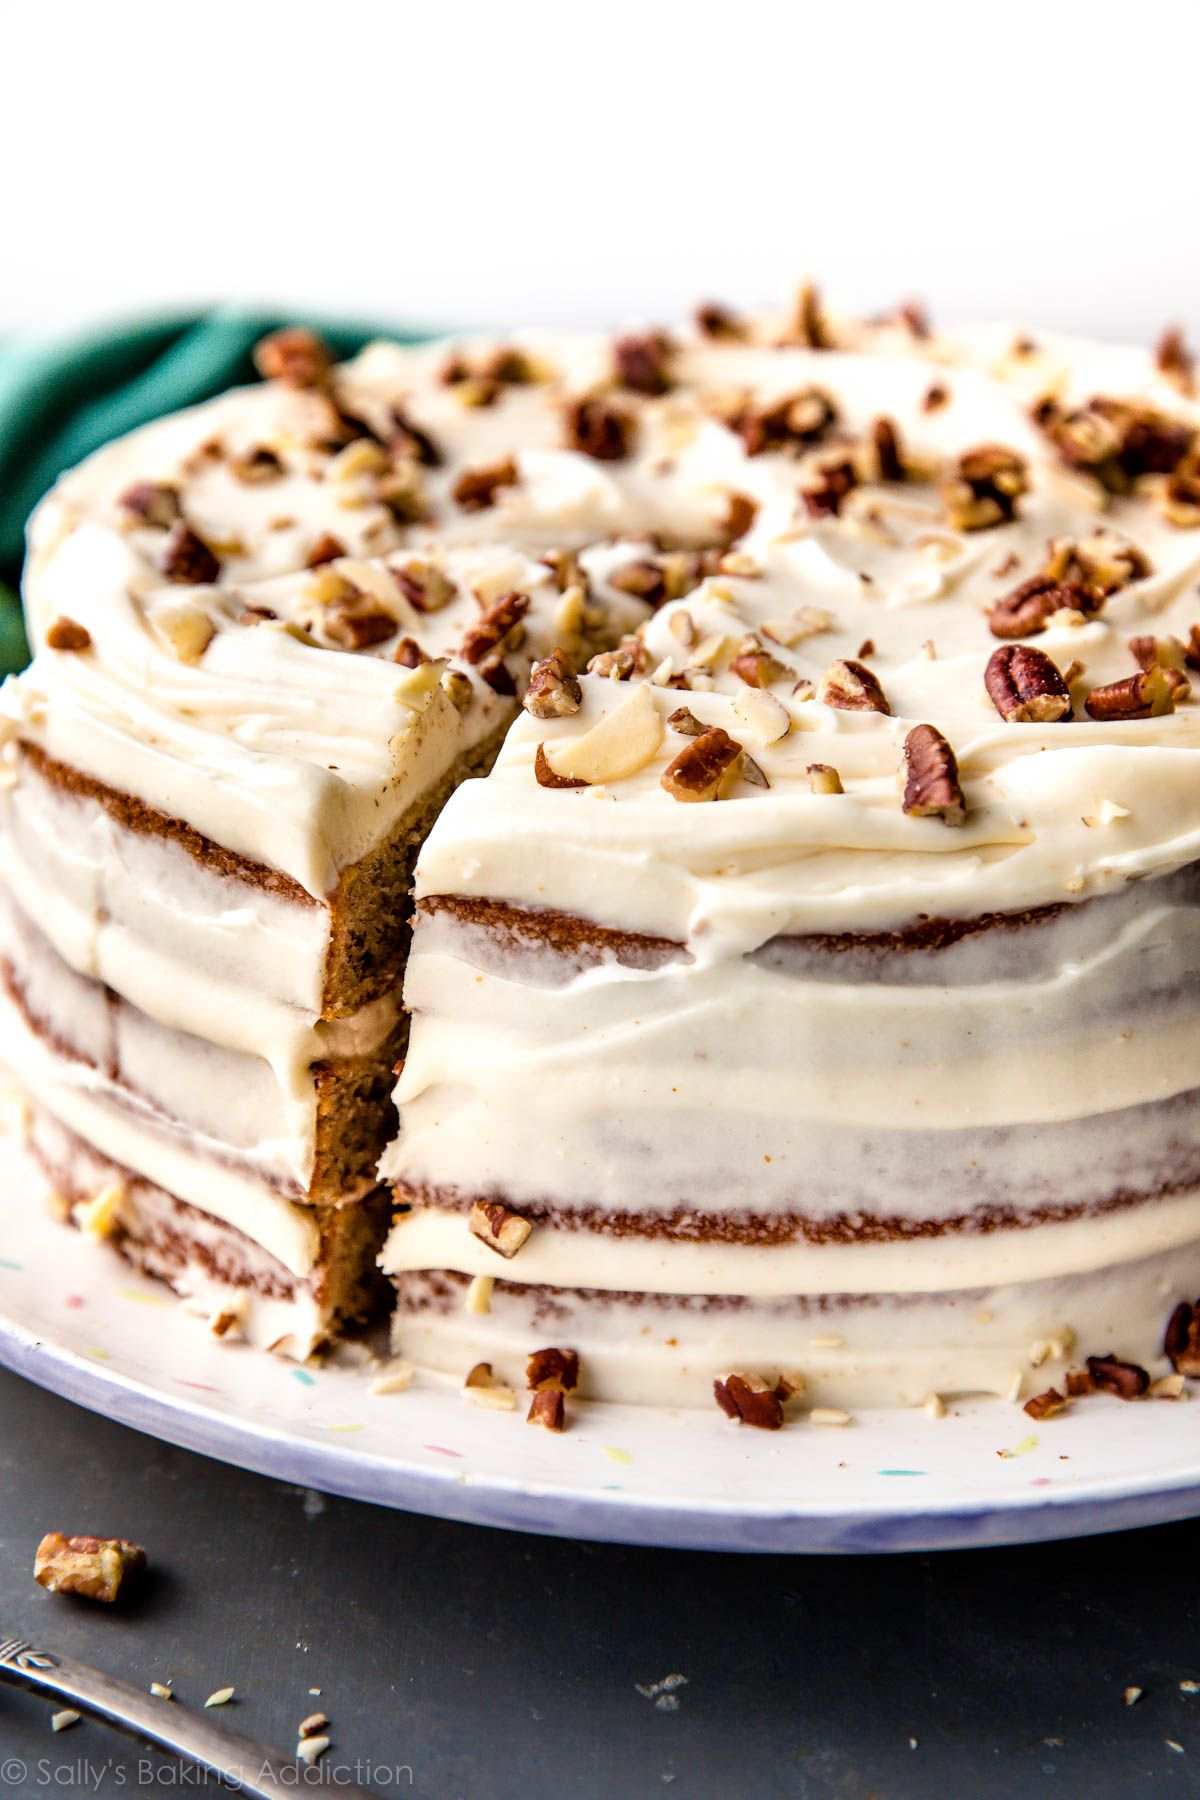 Best Banana Layer Cake Recipe With Brown Butter Cream Cheese Frosting So Easy To Make Moist Delicious Simple Homemade